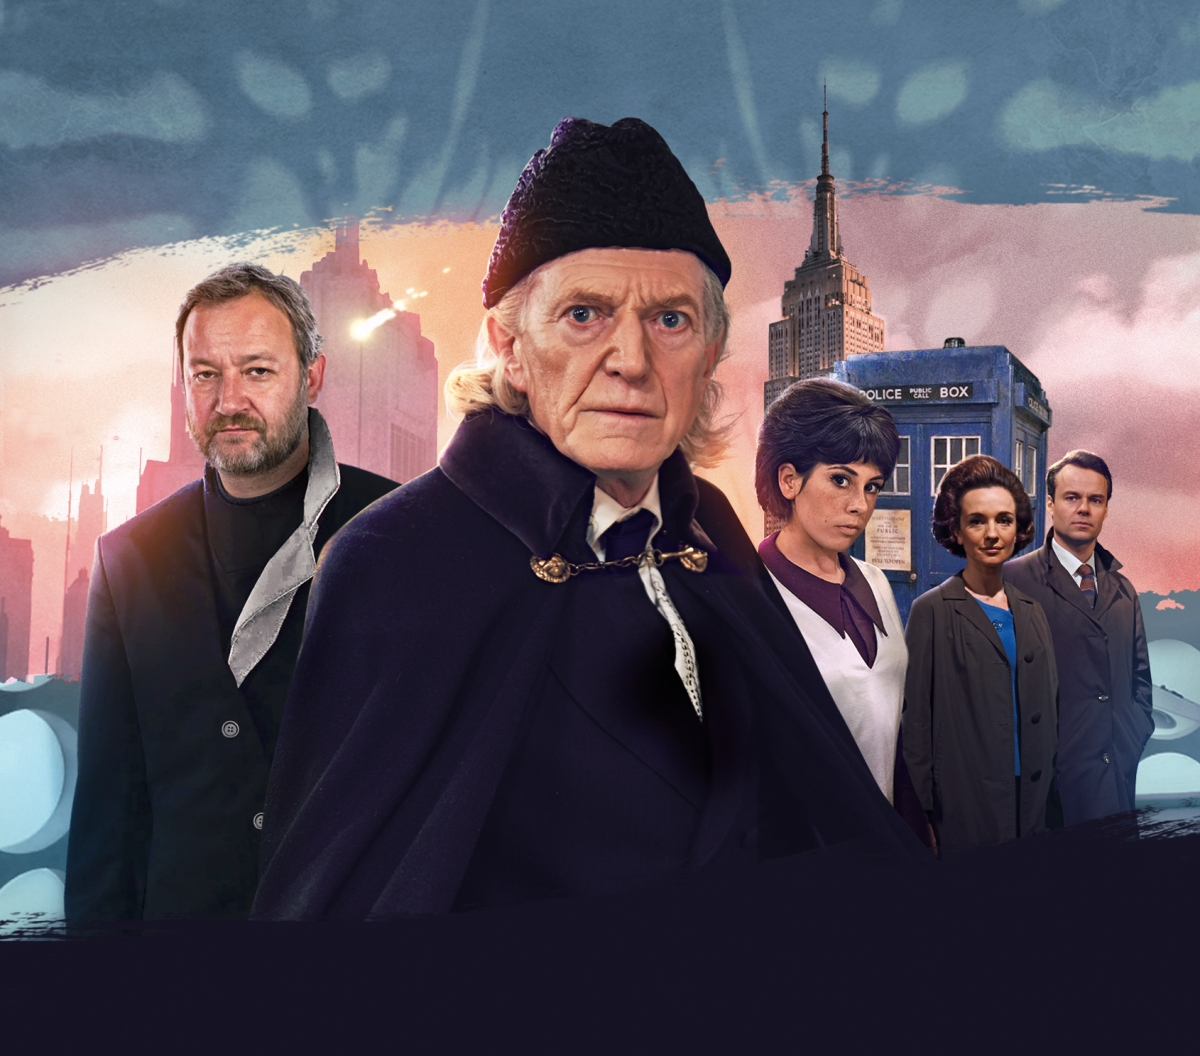 David Bradley to star in the First Doctor Adventures